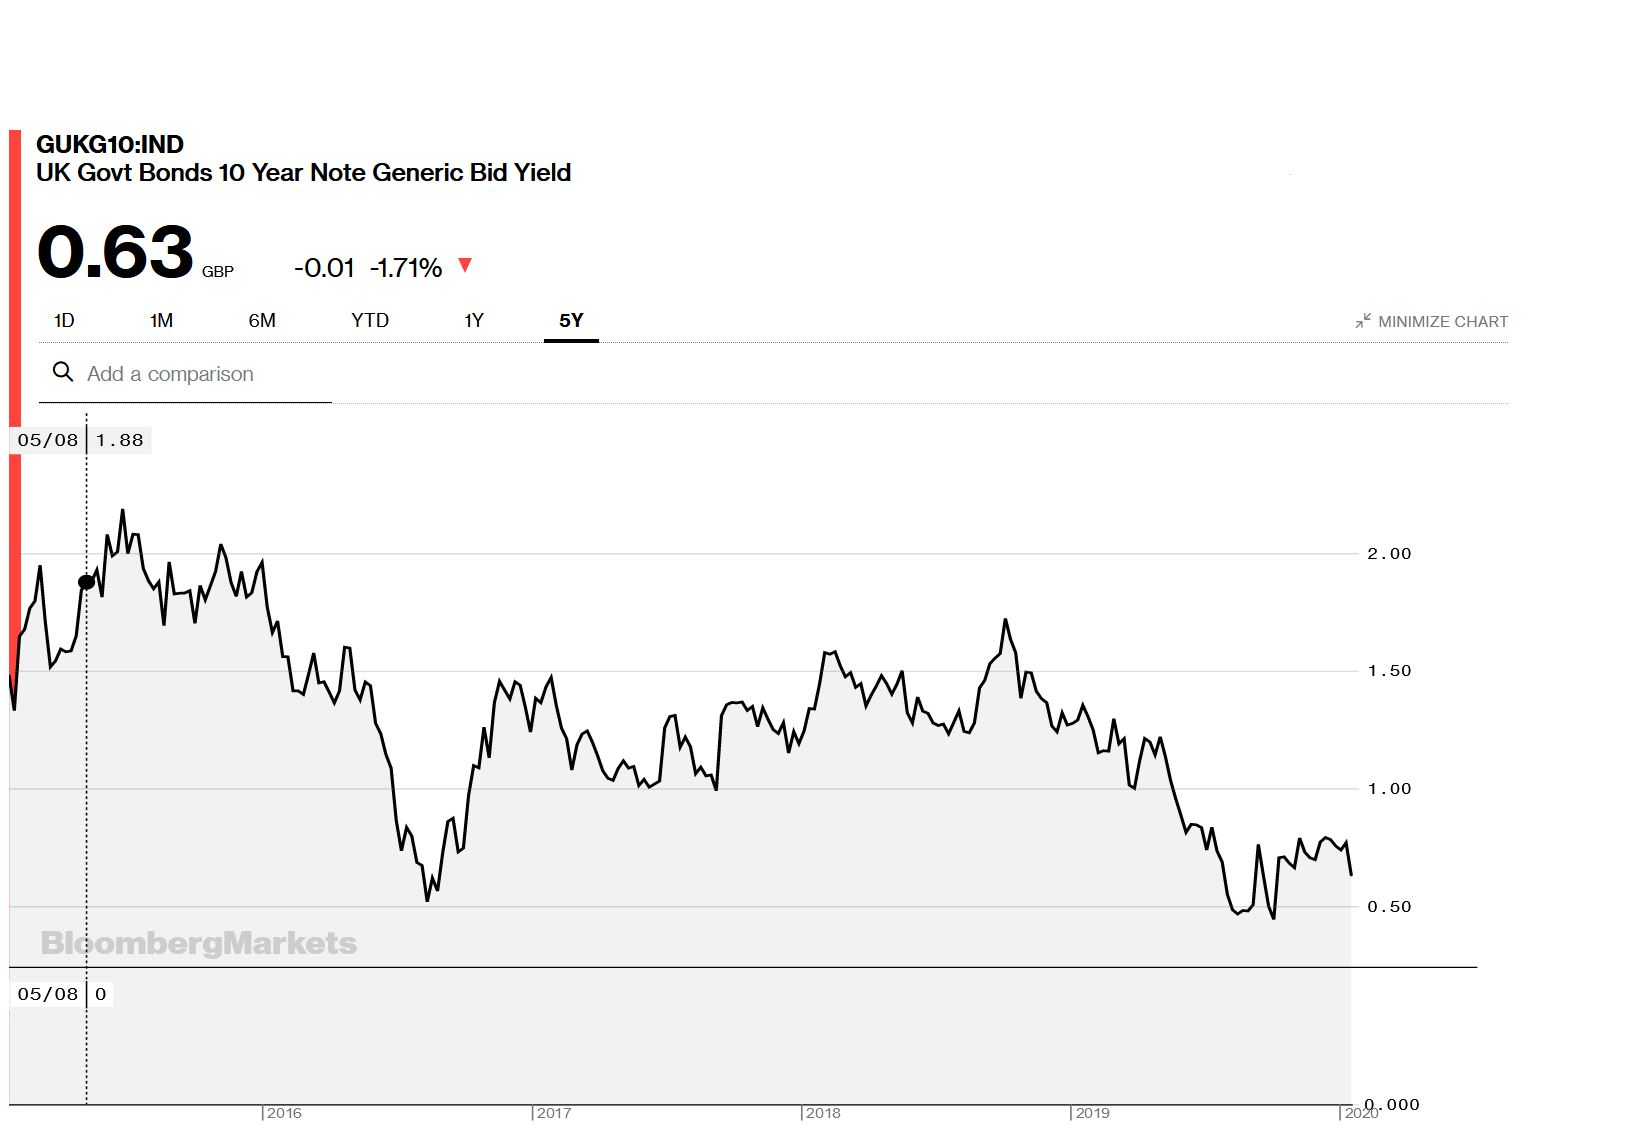 5 Year Chart of 10 Year Interest Rates equity release under 55